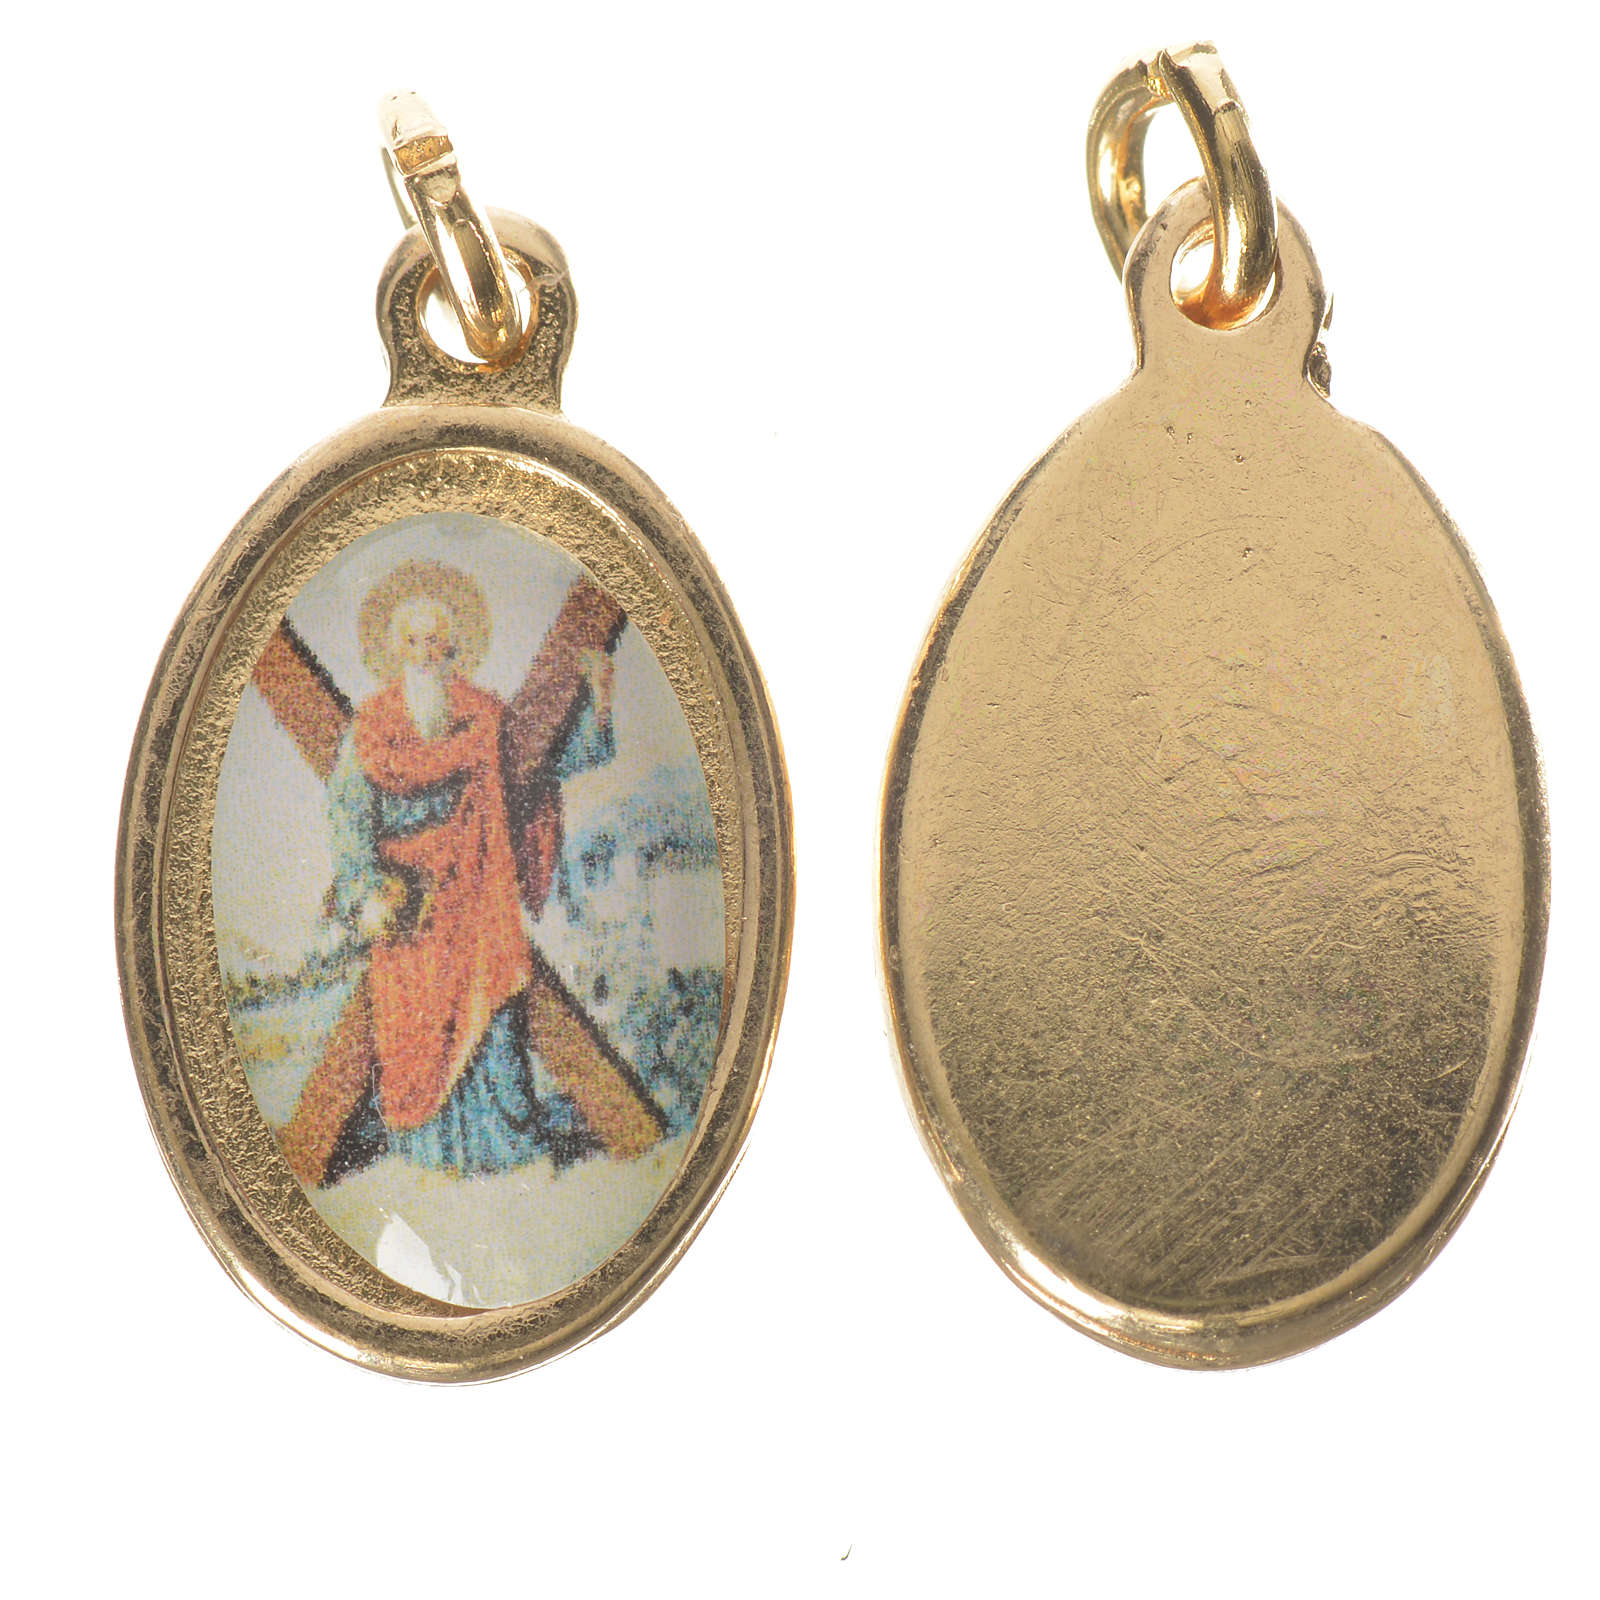 Saint Andrew medal in golden metal, 1.5cm 4